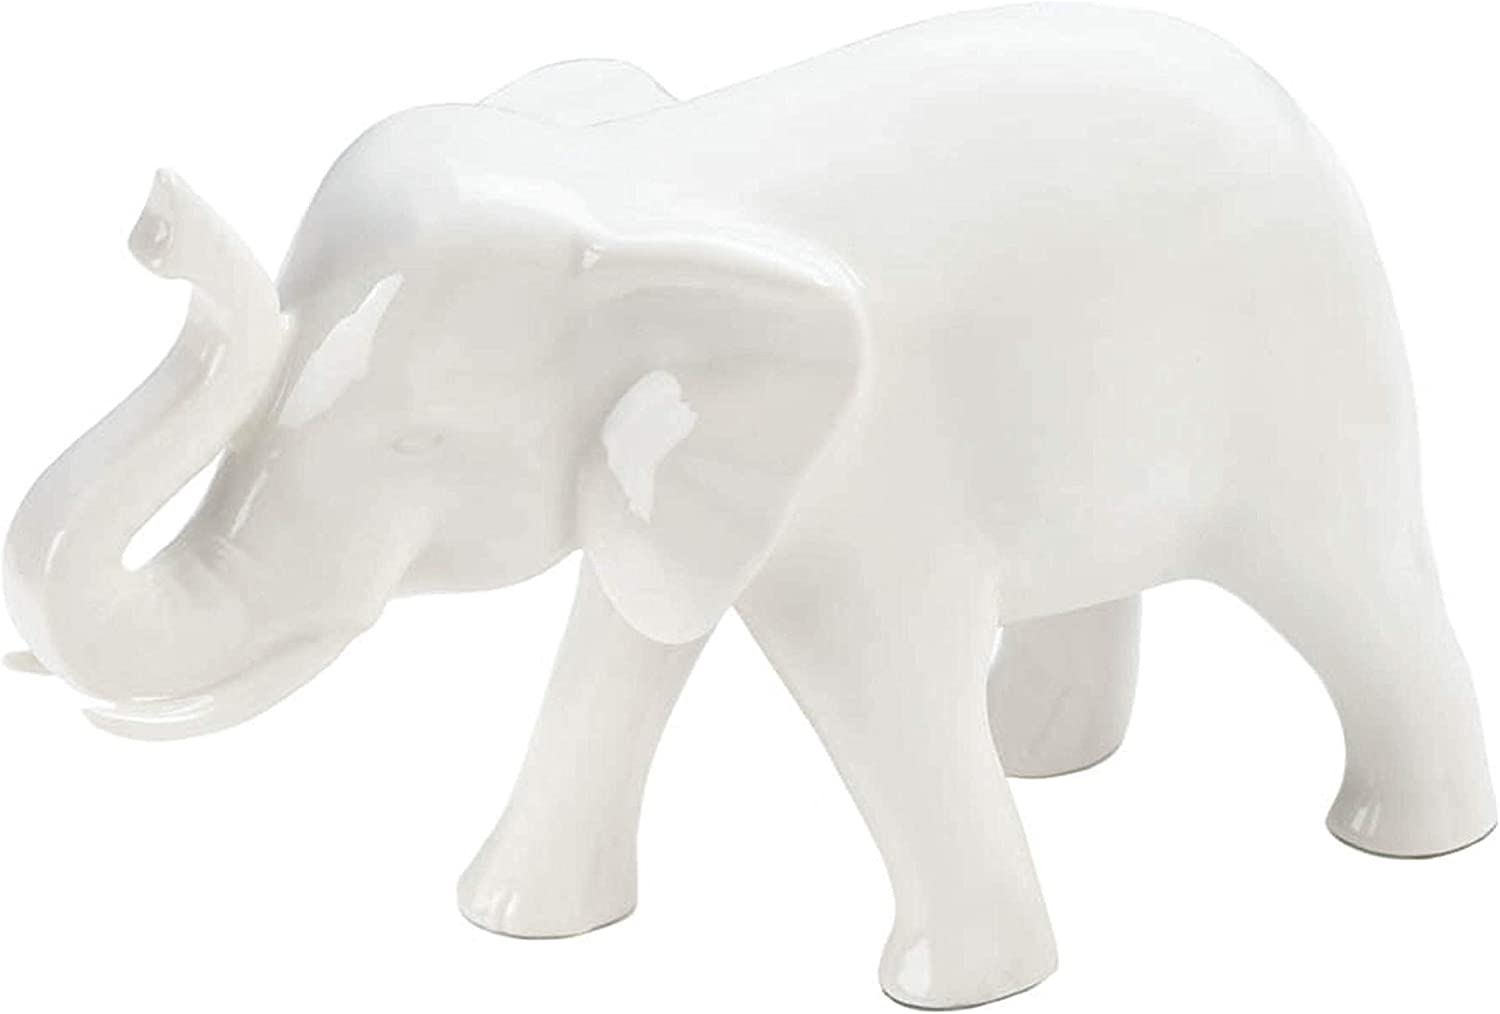 Sleek White Ceramic Elephant 7.25x3x4.75